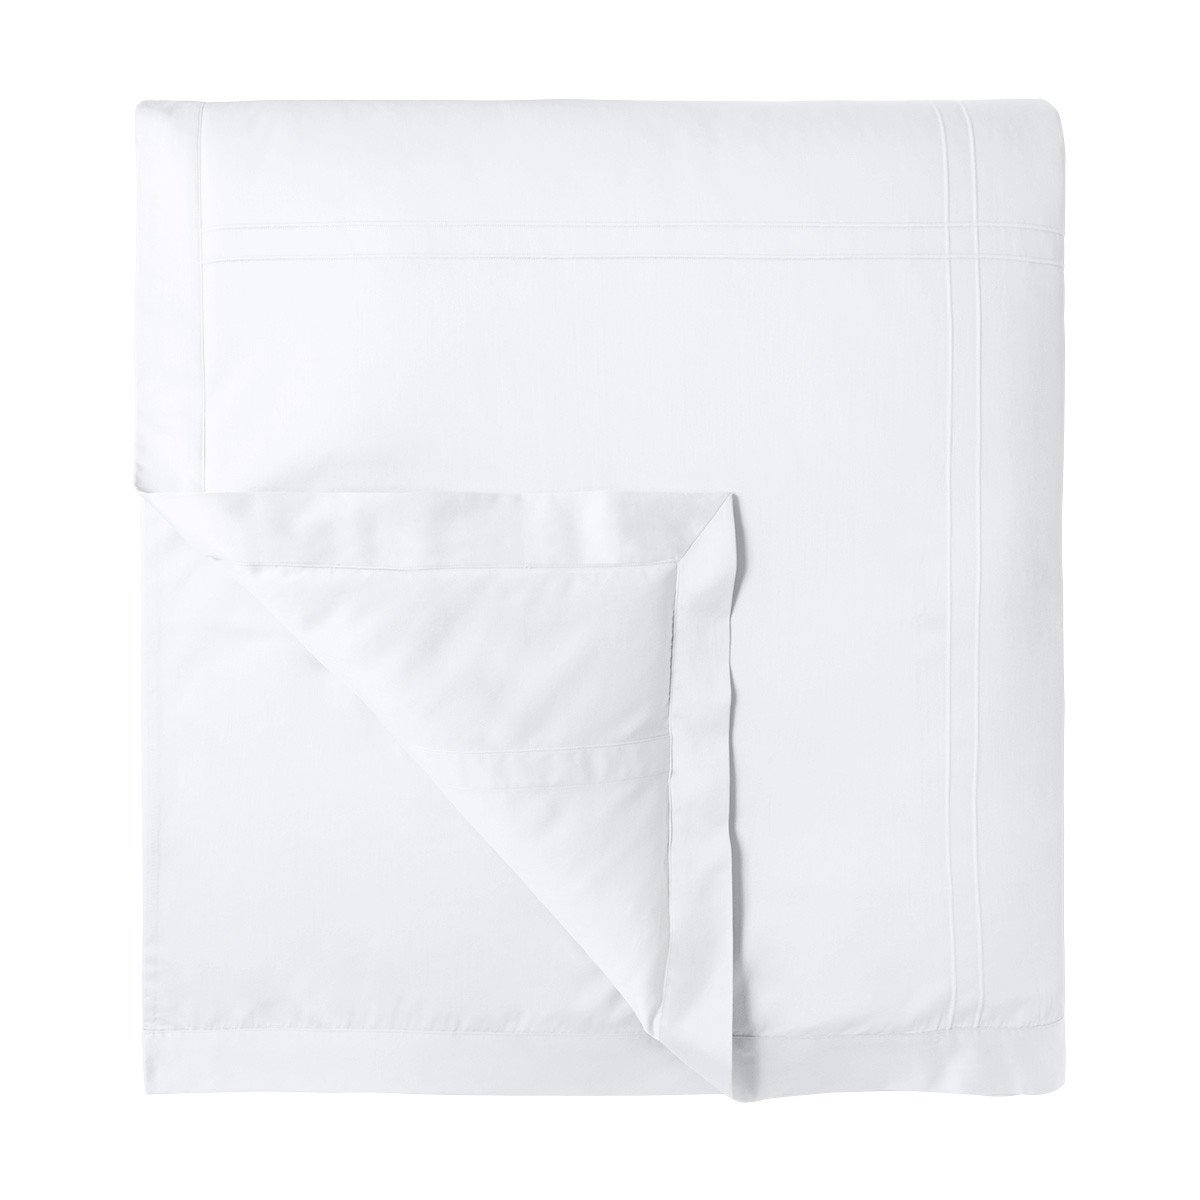 Adagio Blanc Bedding Collection by Yves Delorme | Fig Linens - White, cotton, luxury duvet cover